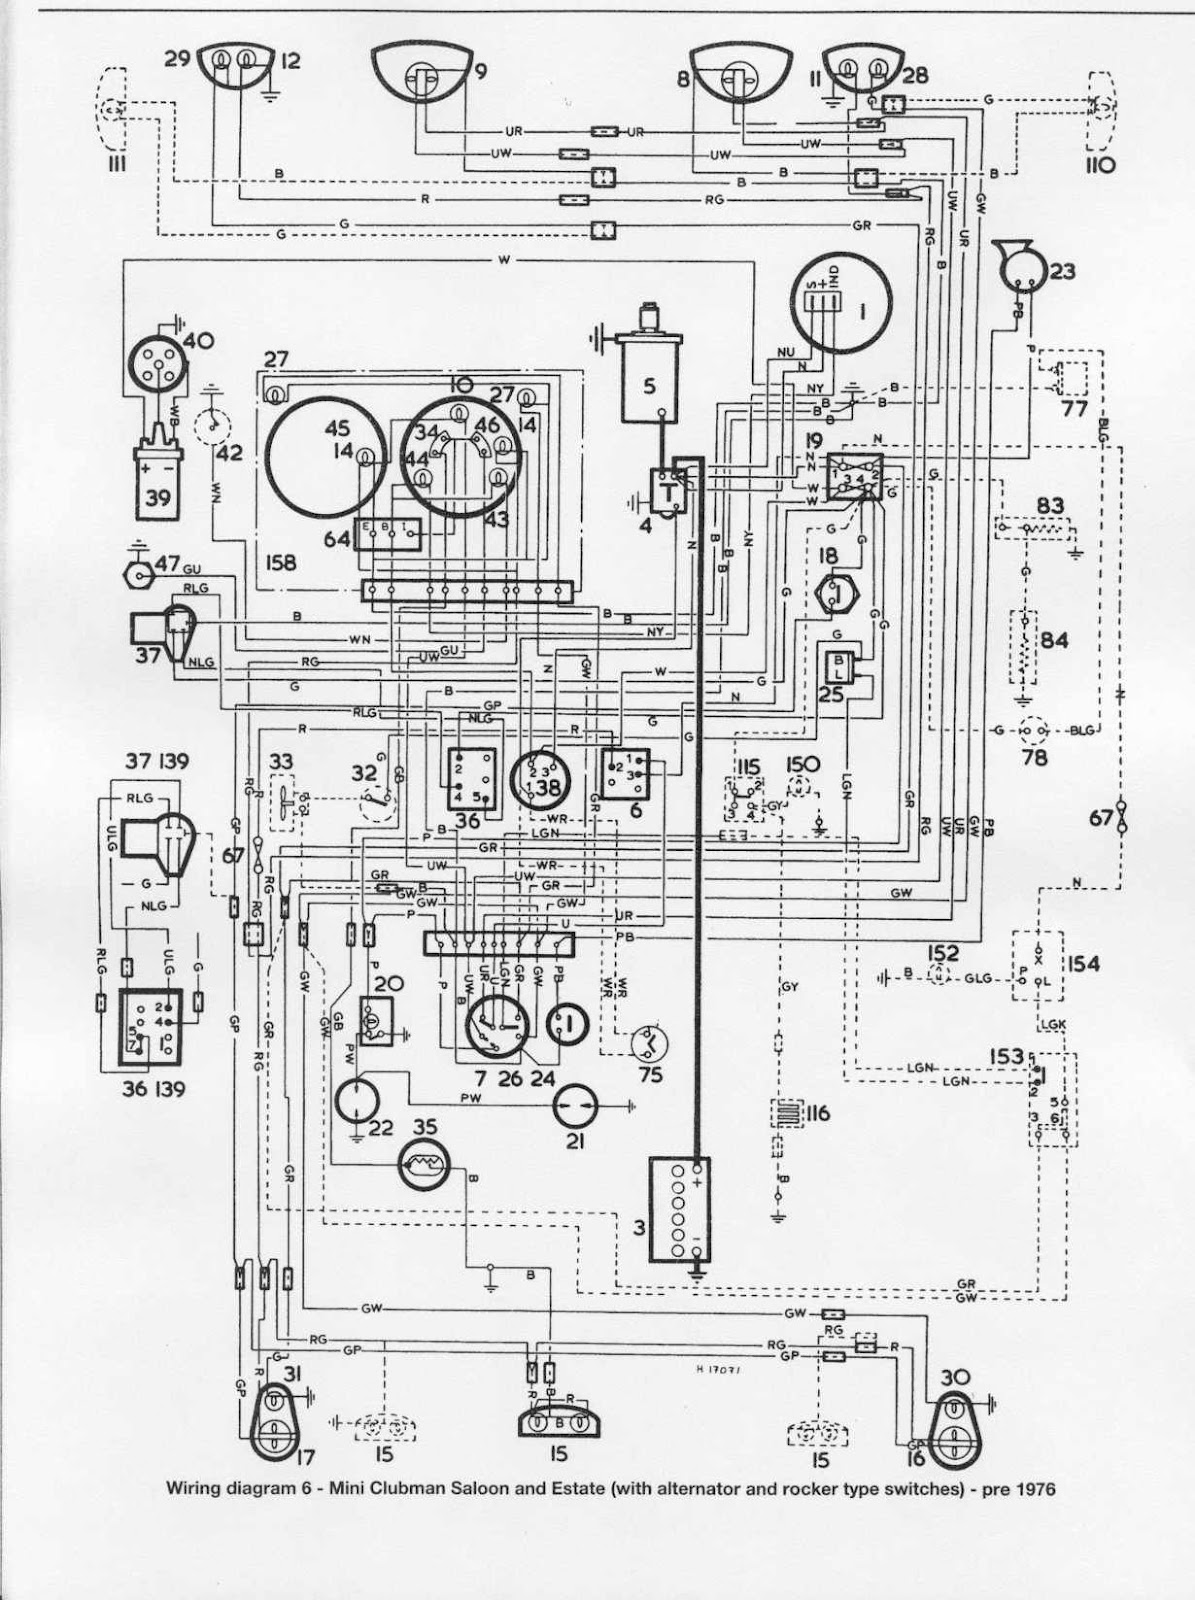 mini wiring diagram mini wiring diagrams mini clubman saloon and estate 1976 electrical wiring